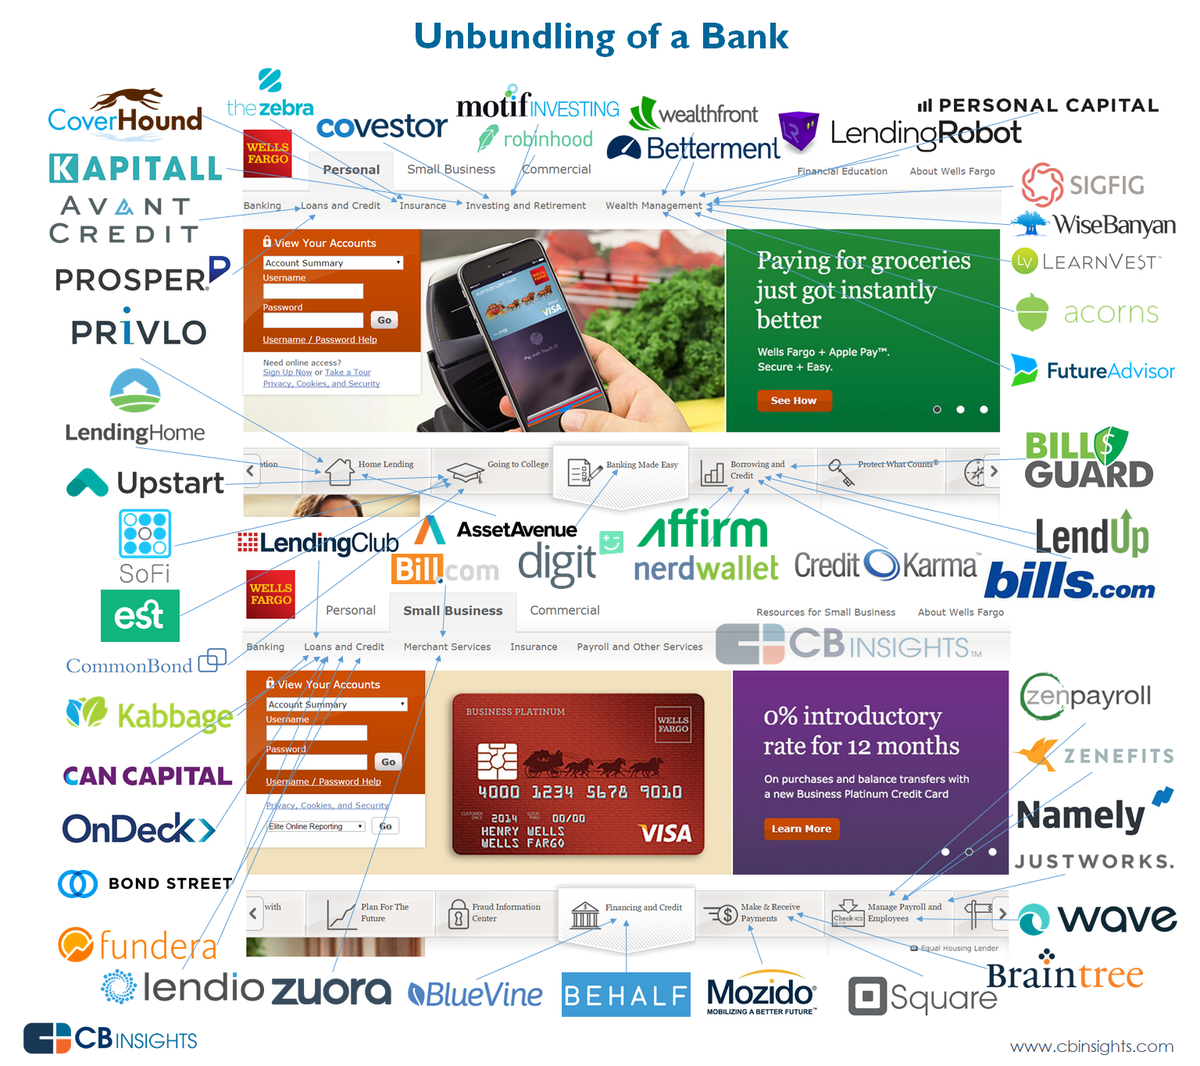 A great infographic on the unbundling of banks and the opportunity for a financial services startup: http://t.co/x3pBXMqvt7